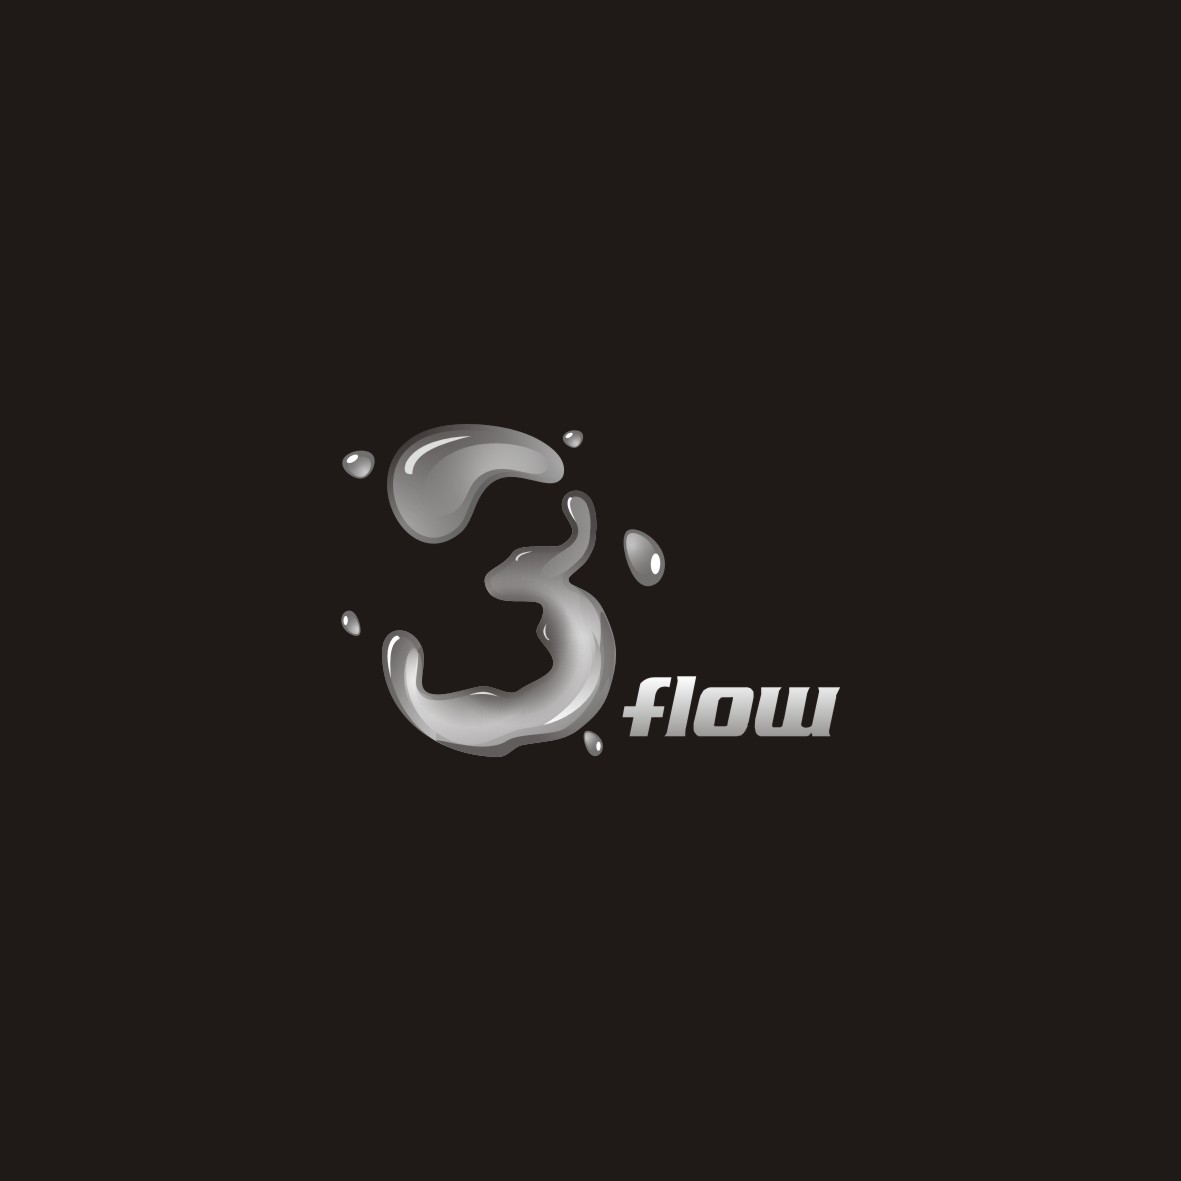 Logo Design by arteo_design - Entry No. 49 in the Logo Design Contest Fun Logo Design for 3flow.